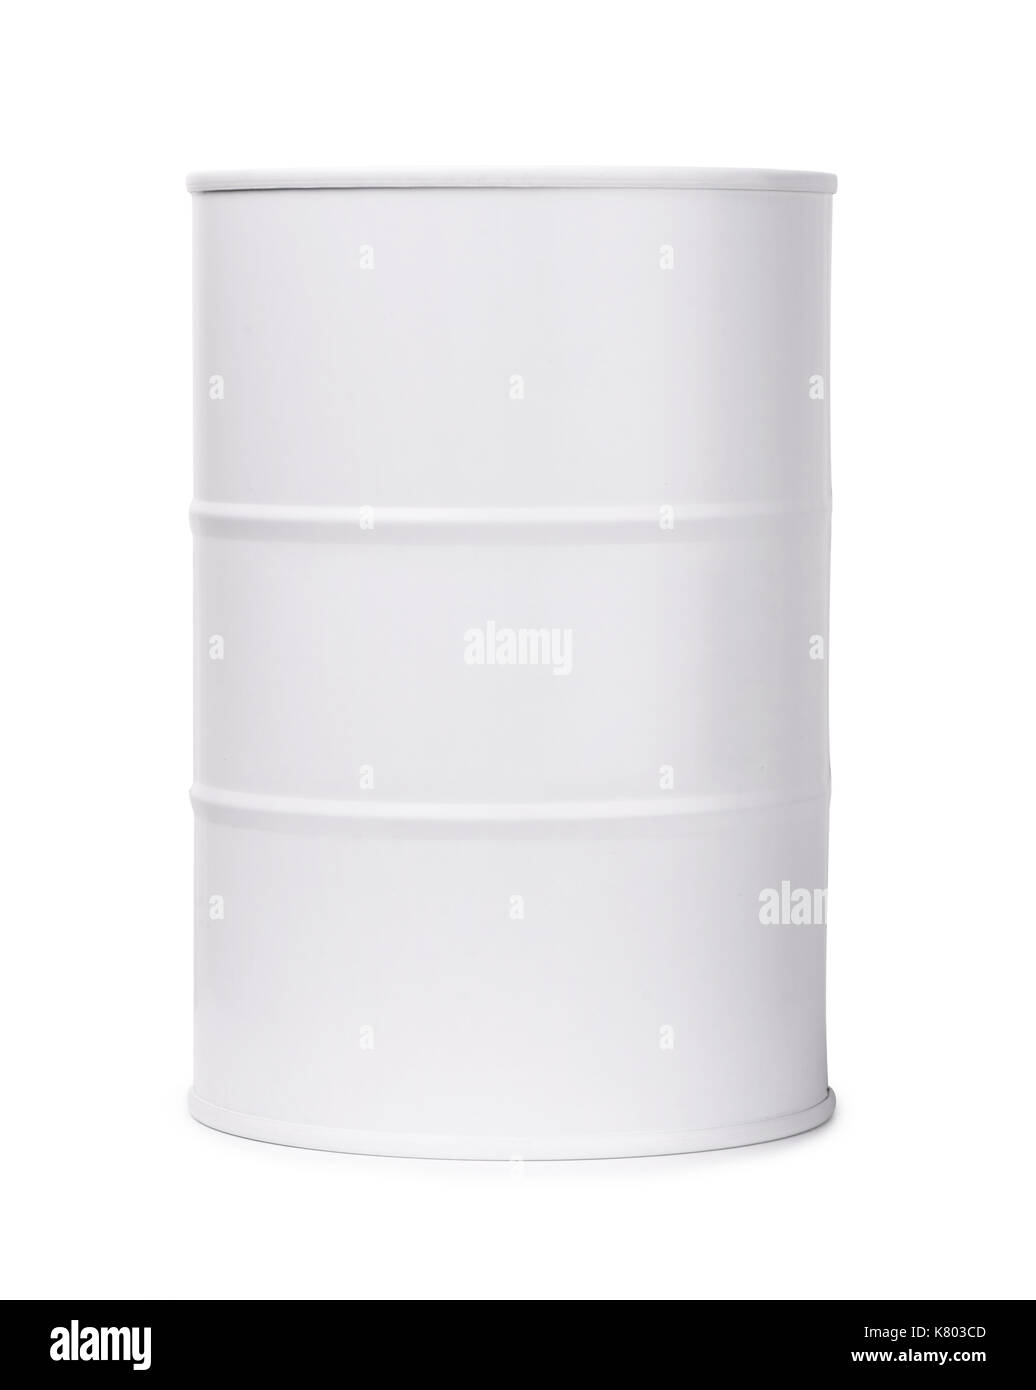 White barrel of fuel or chemicals isolated on a white background - Stock Image